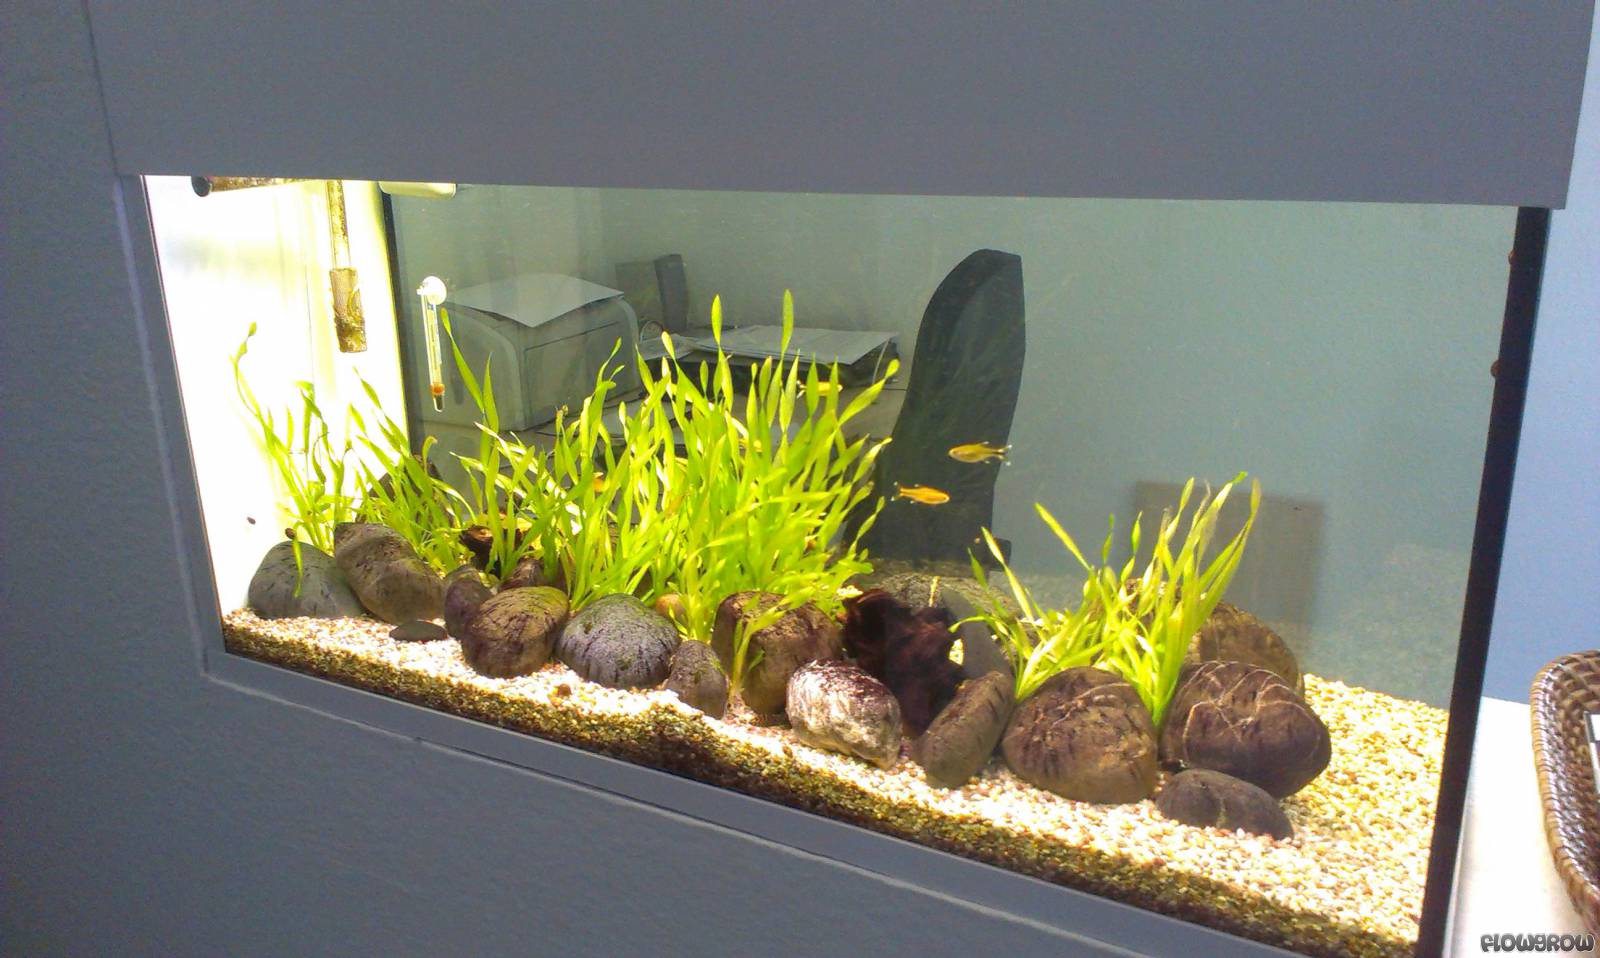 raumteiler flowgrow aquascape aquarien datenbank. Black Bedroom Furniture Sets. Home Design Ideas